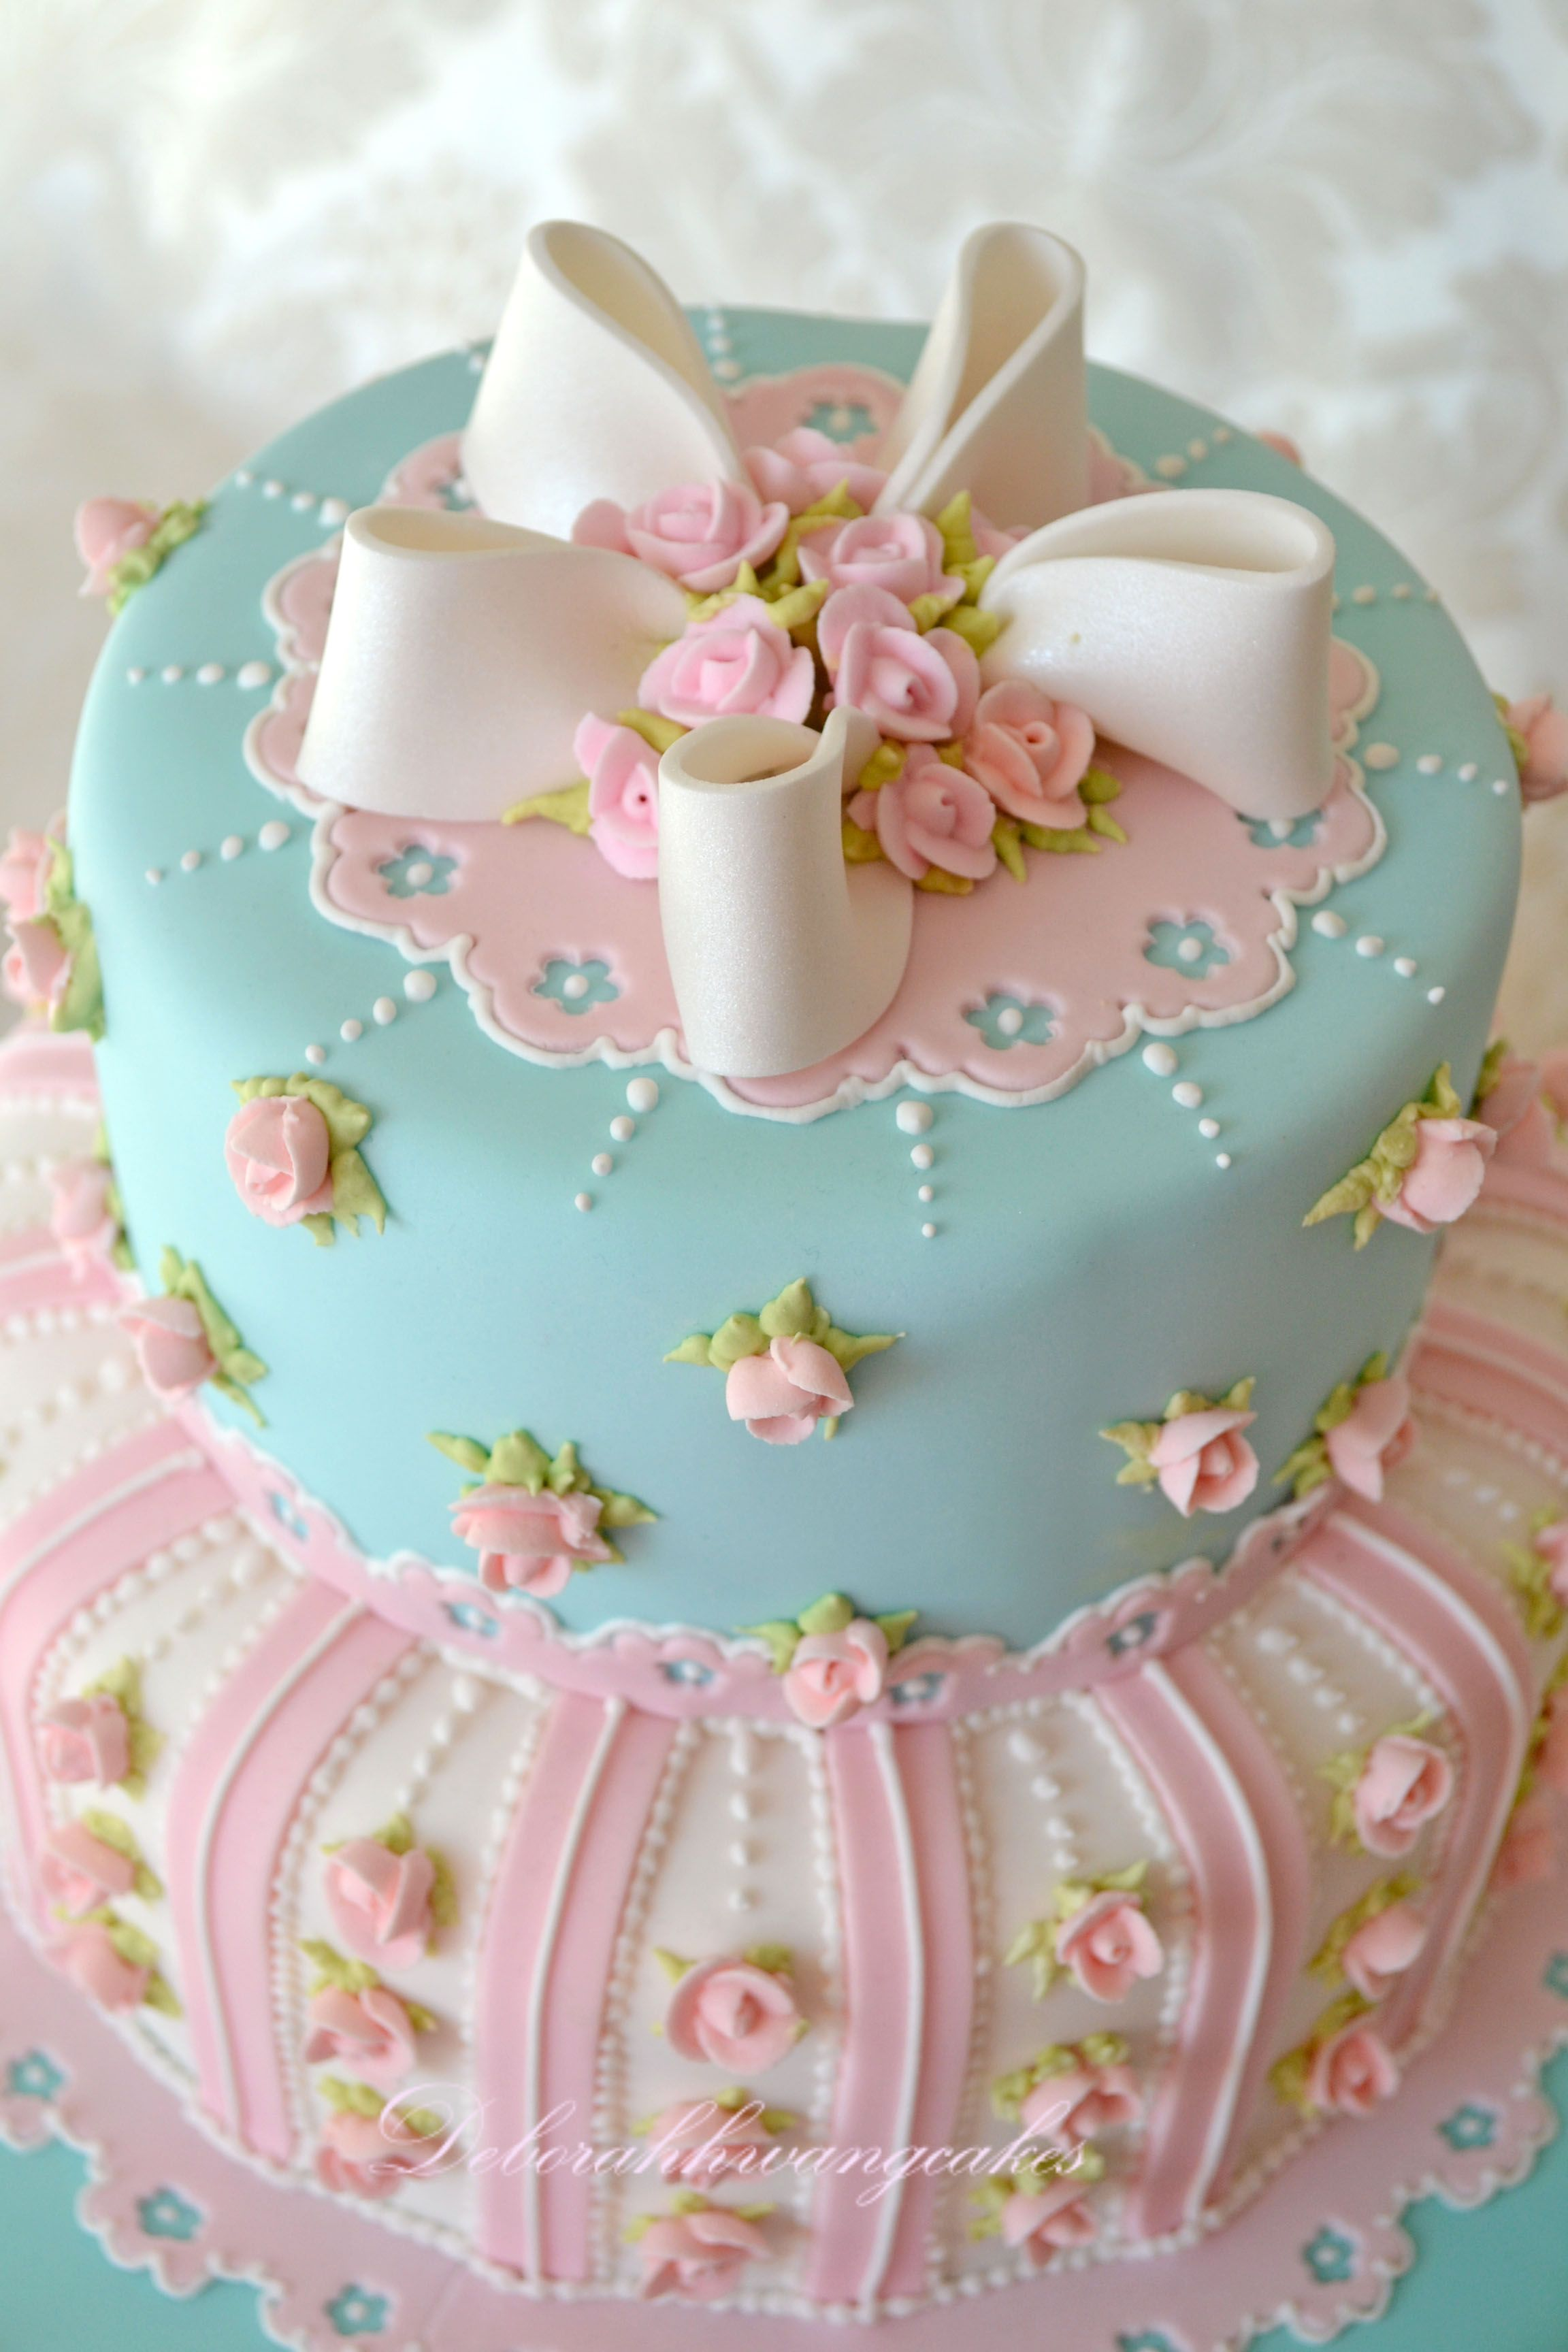 This Cake For A Girls Birthday Or Tea Party Or If Its A Girl It